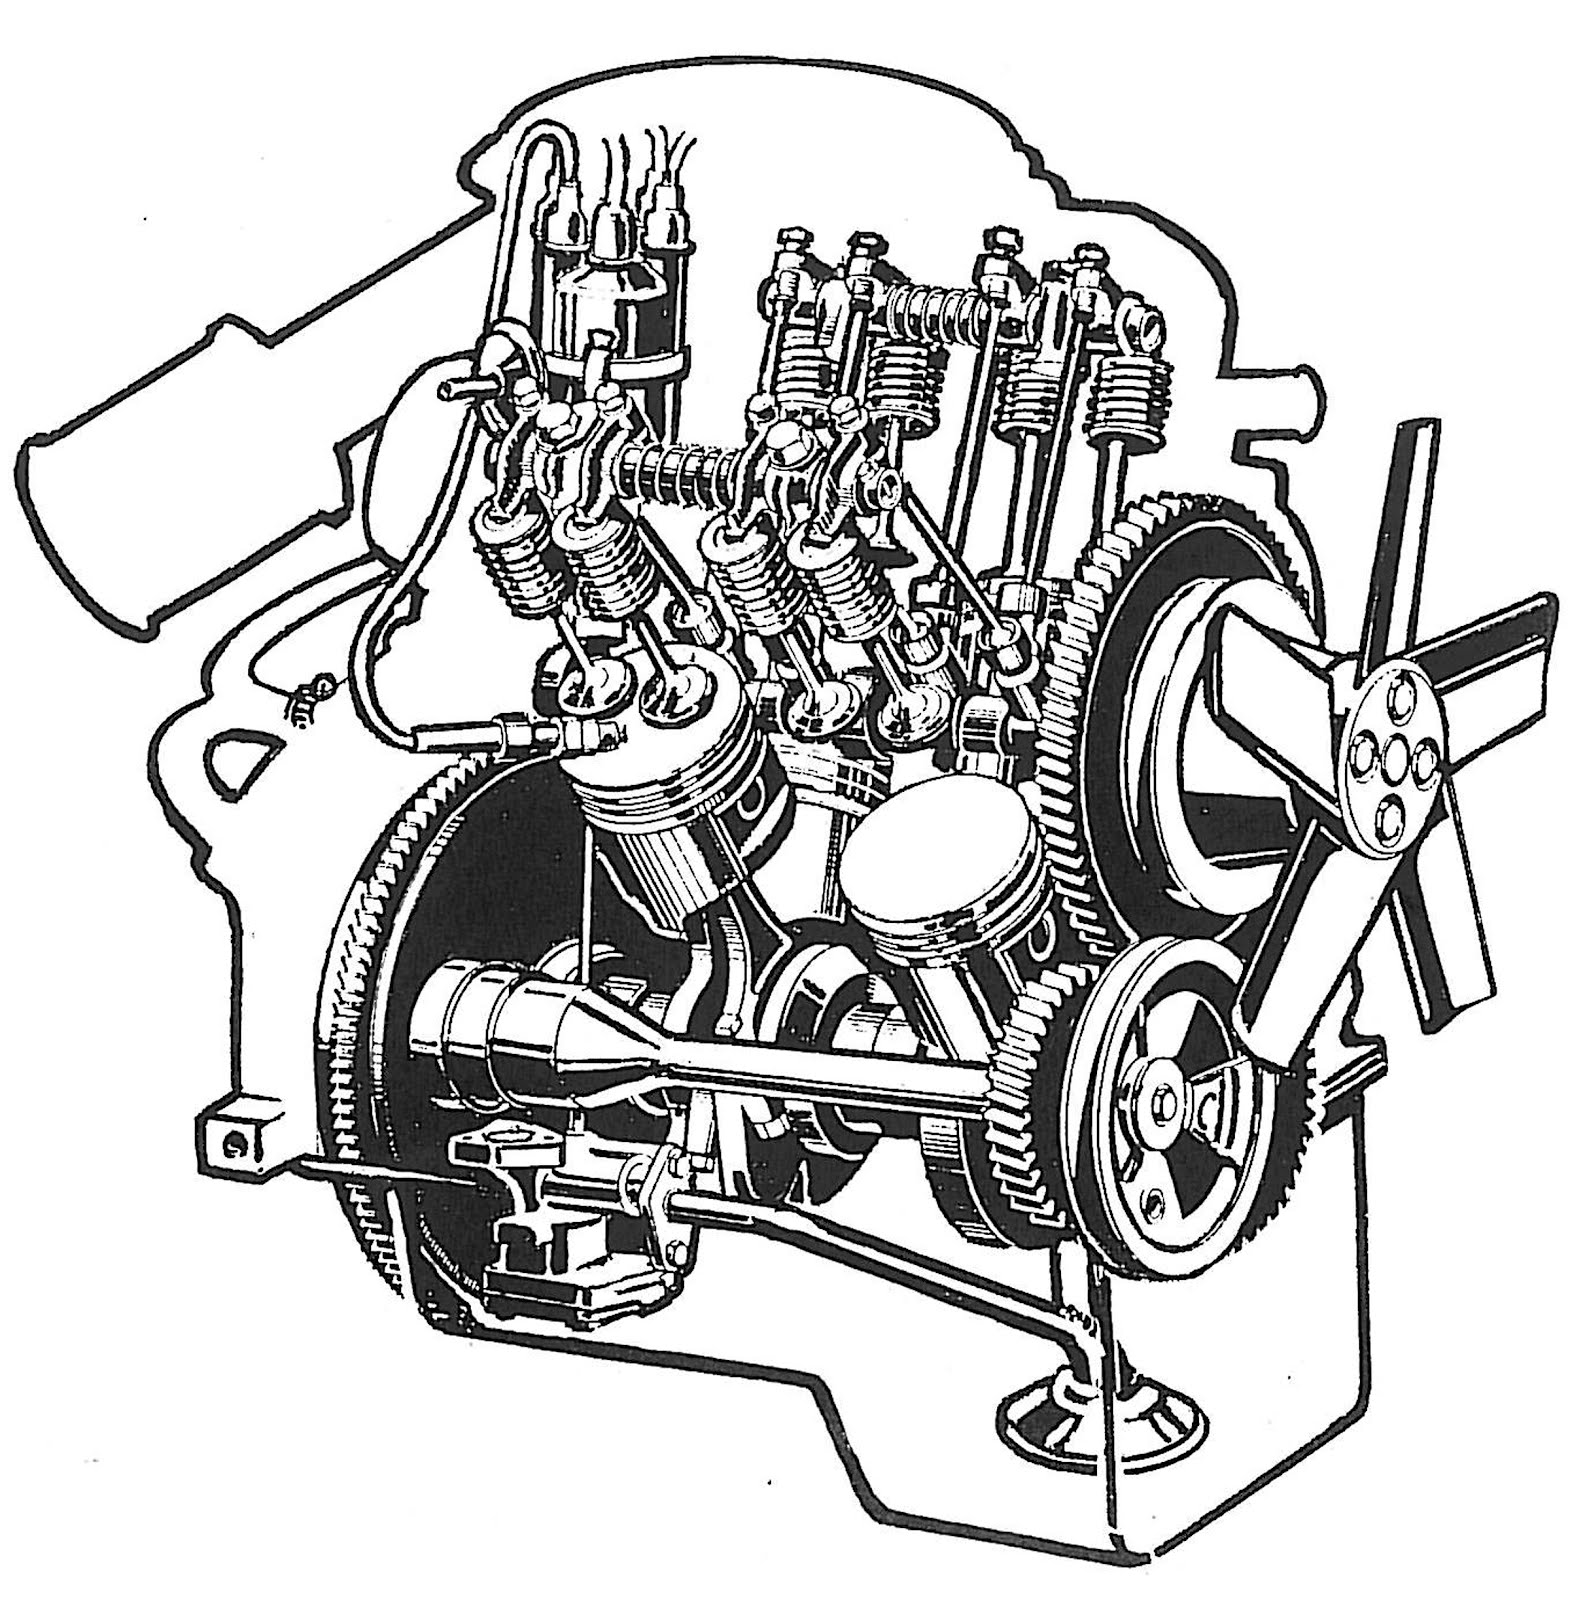 V4 Car Engine Diagram Wiring Library Saab Diagrams